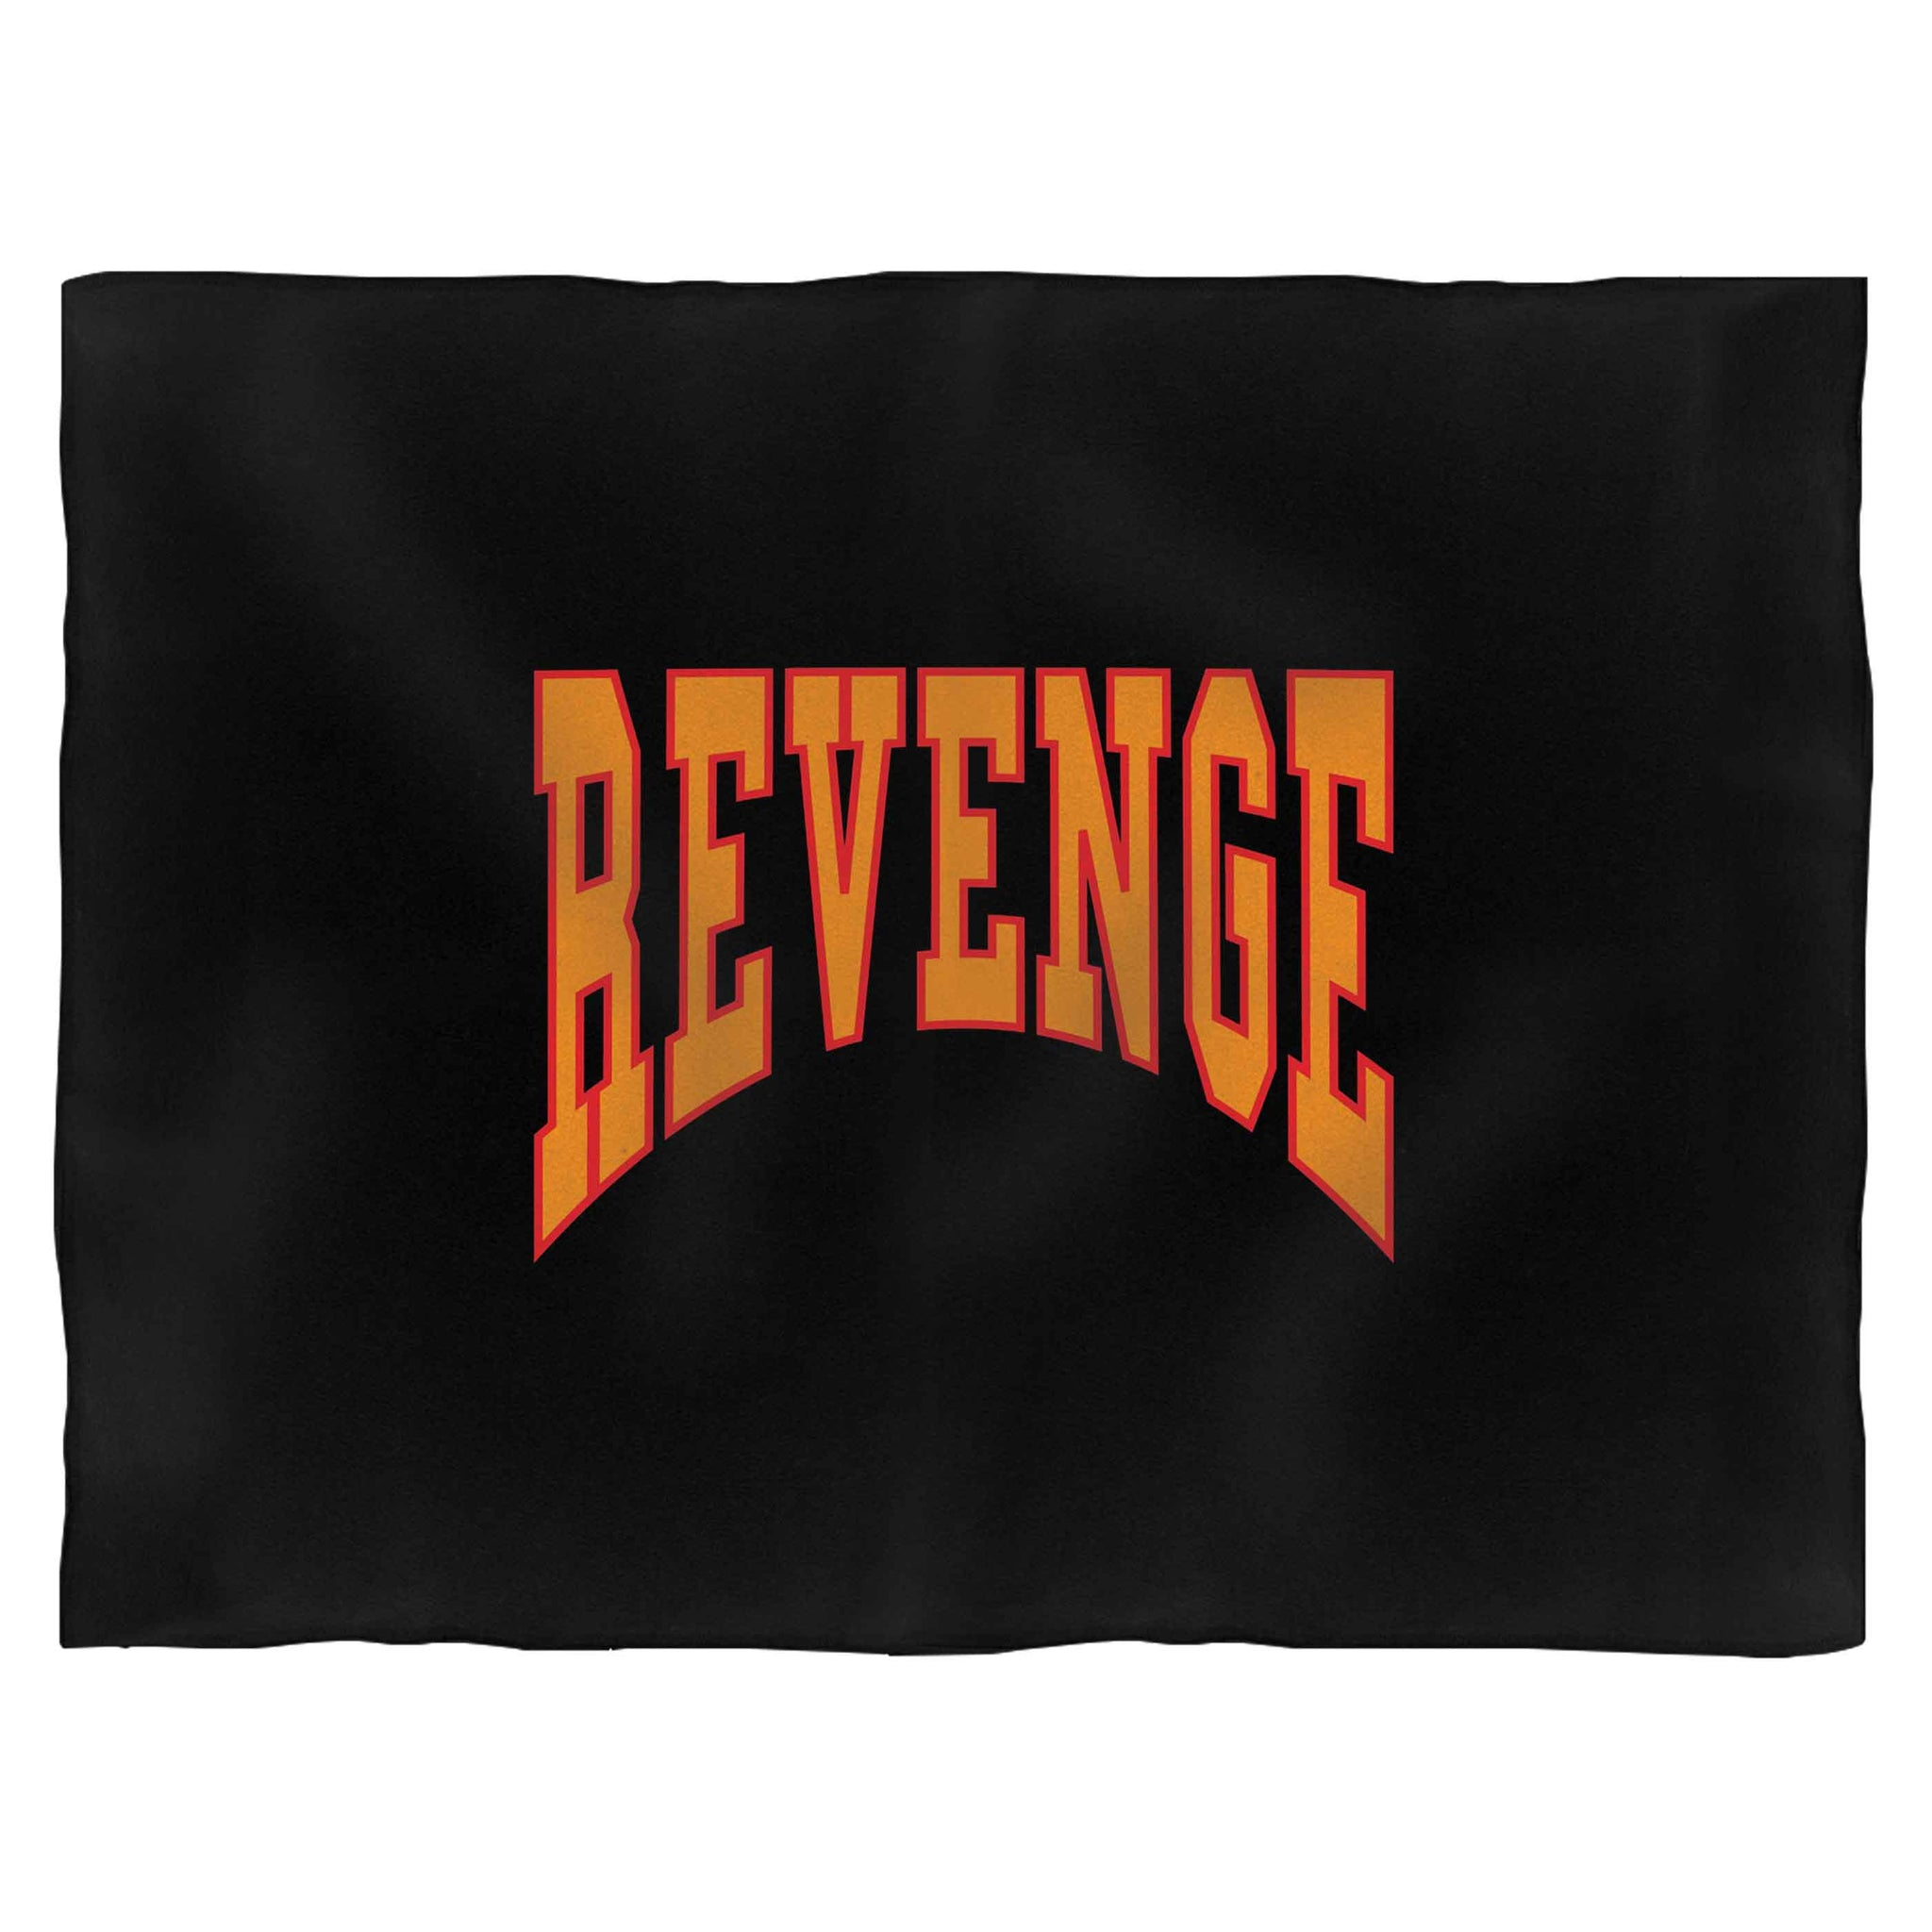 Drake All Summer Sixteen Tour Revenge Blanket